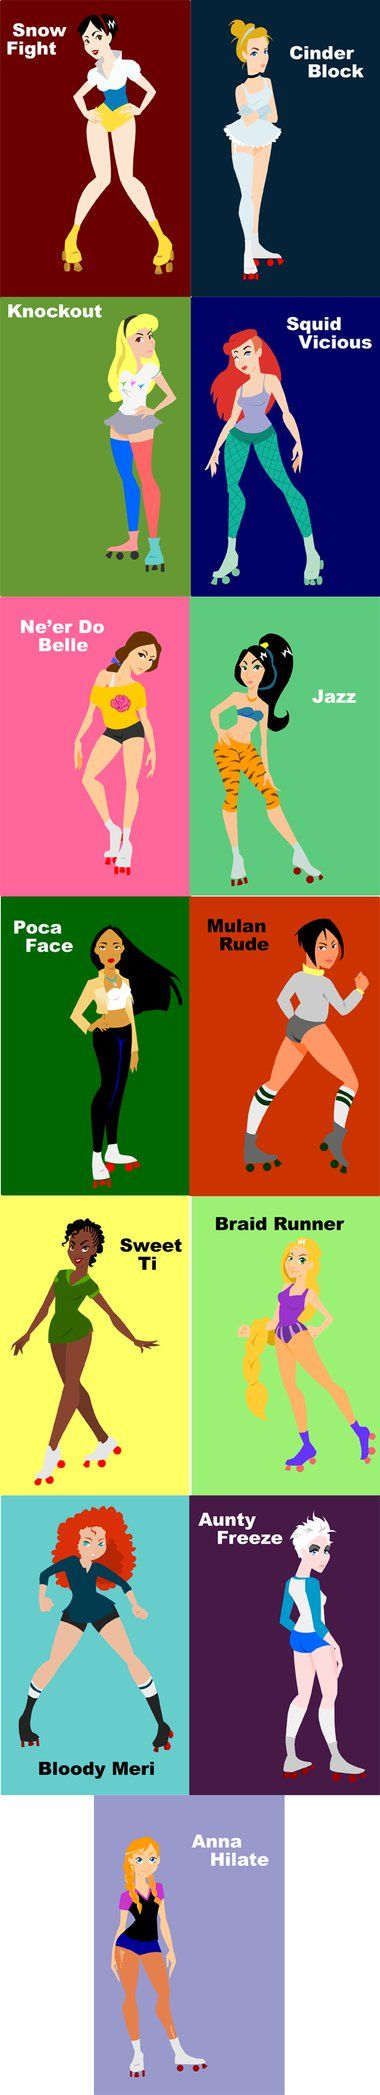 Disney princesses as roller derby players - by Amanda Robinson